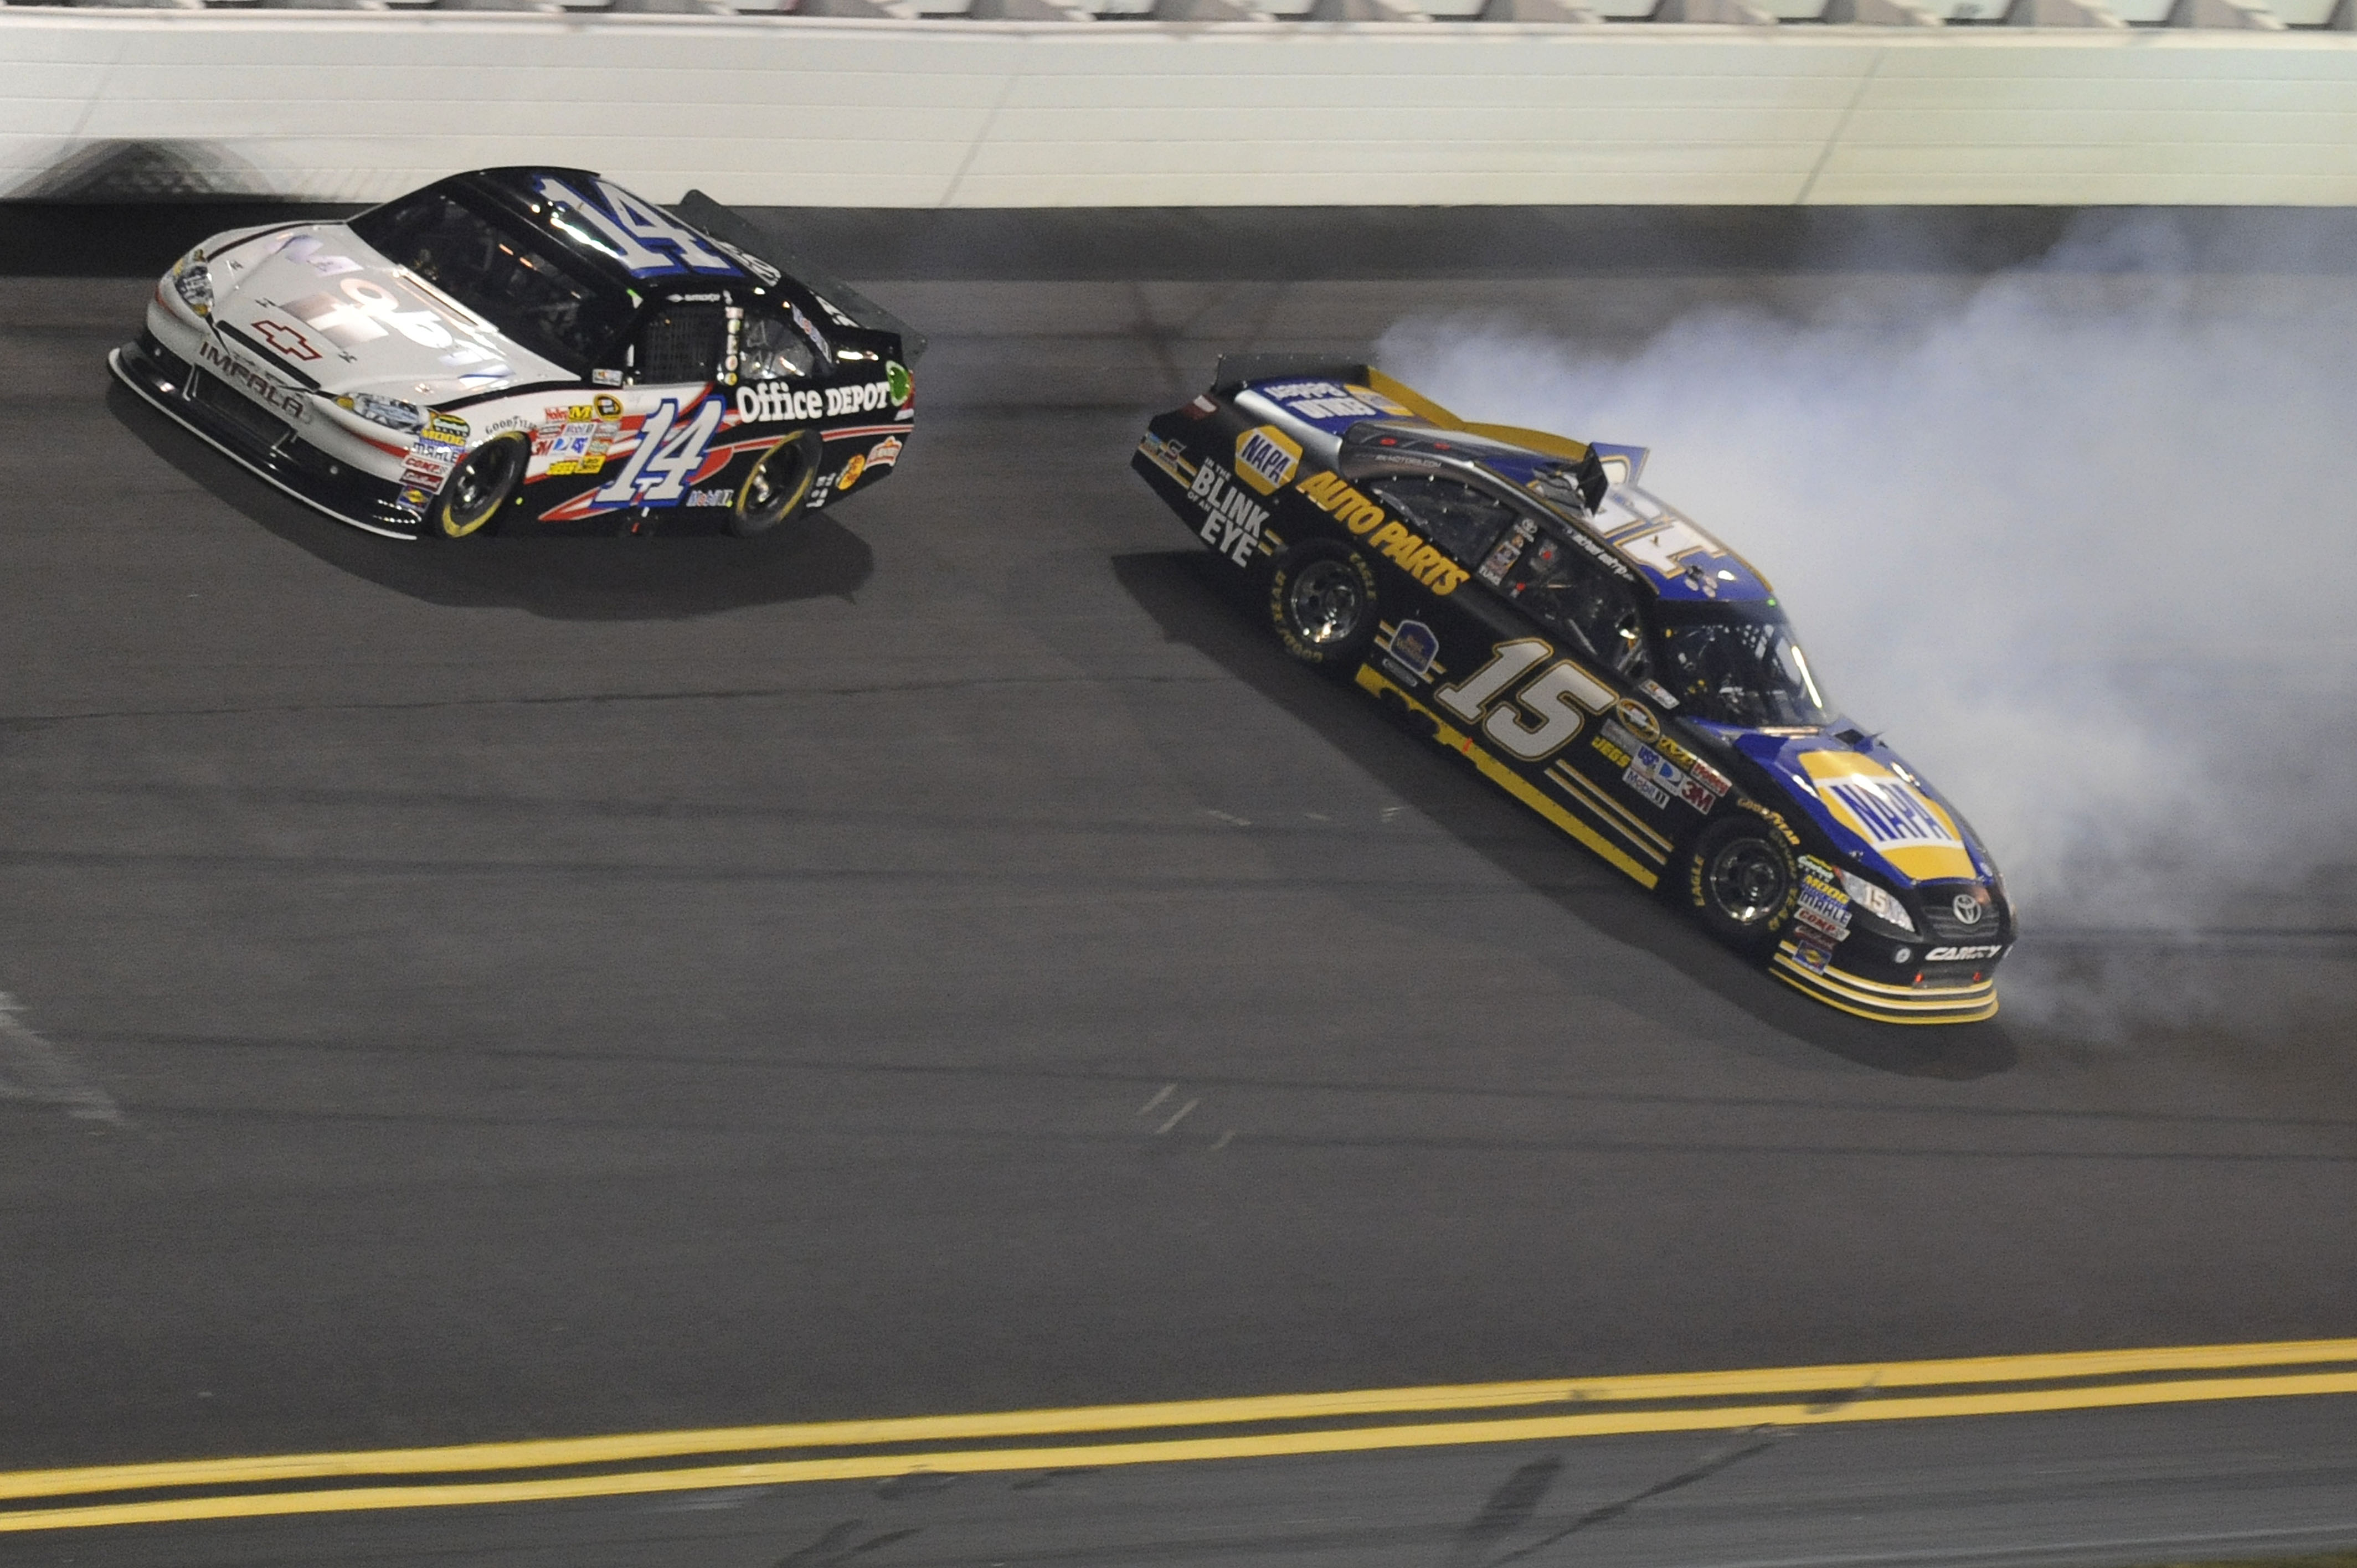 Tony Stewart had some difficulty drafting with Michael Waltrip.